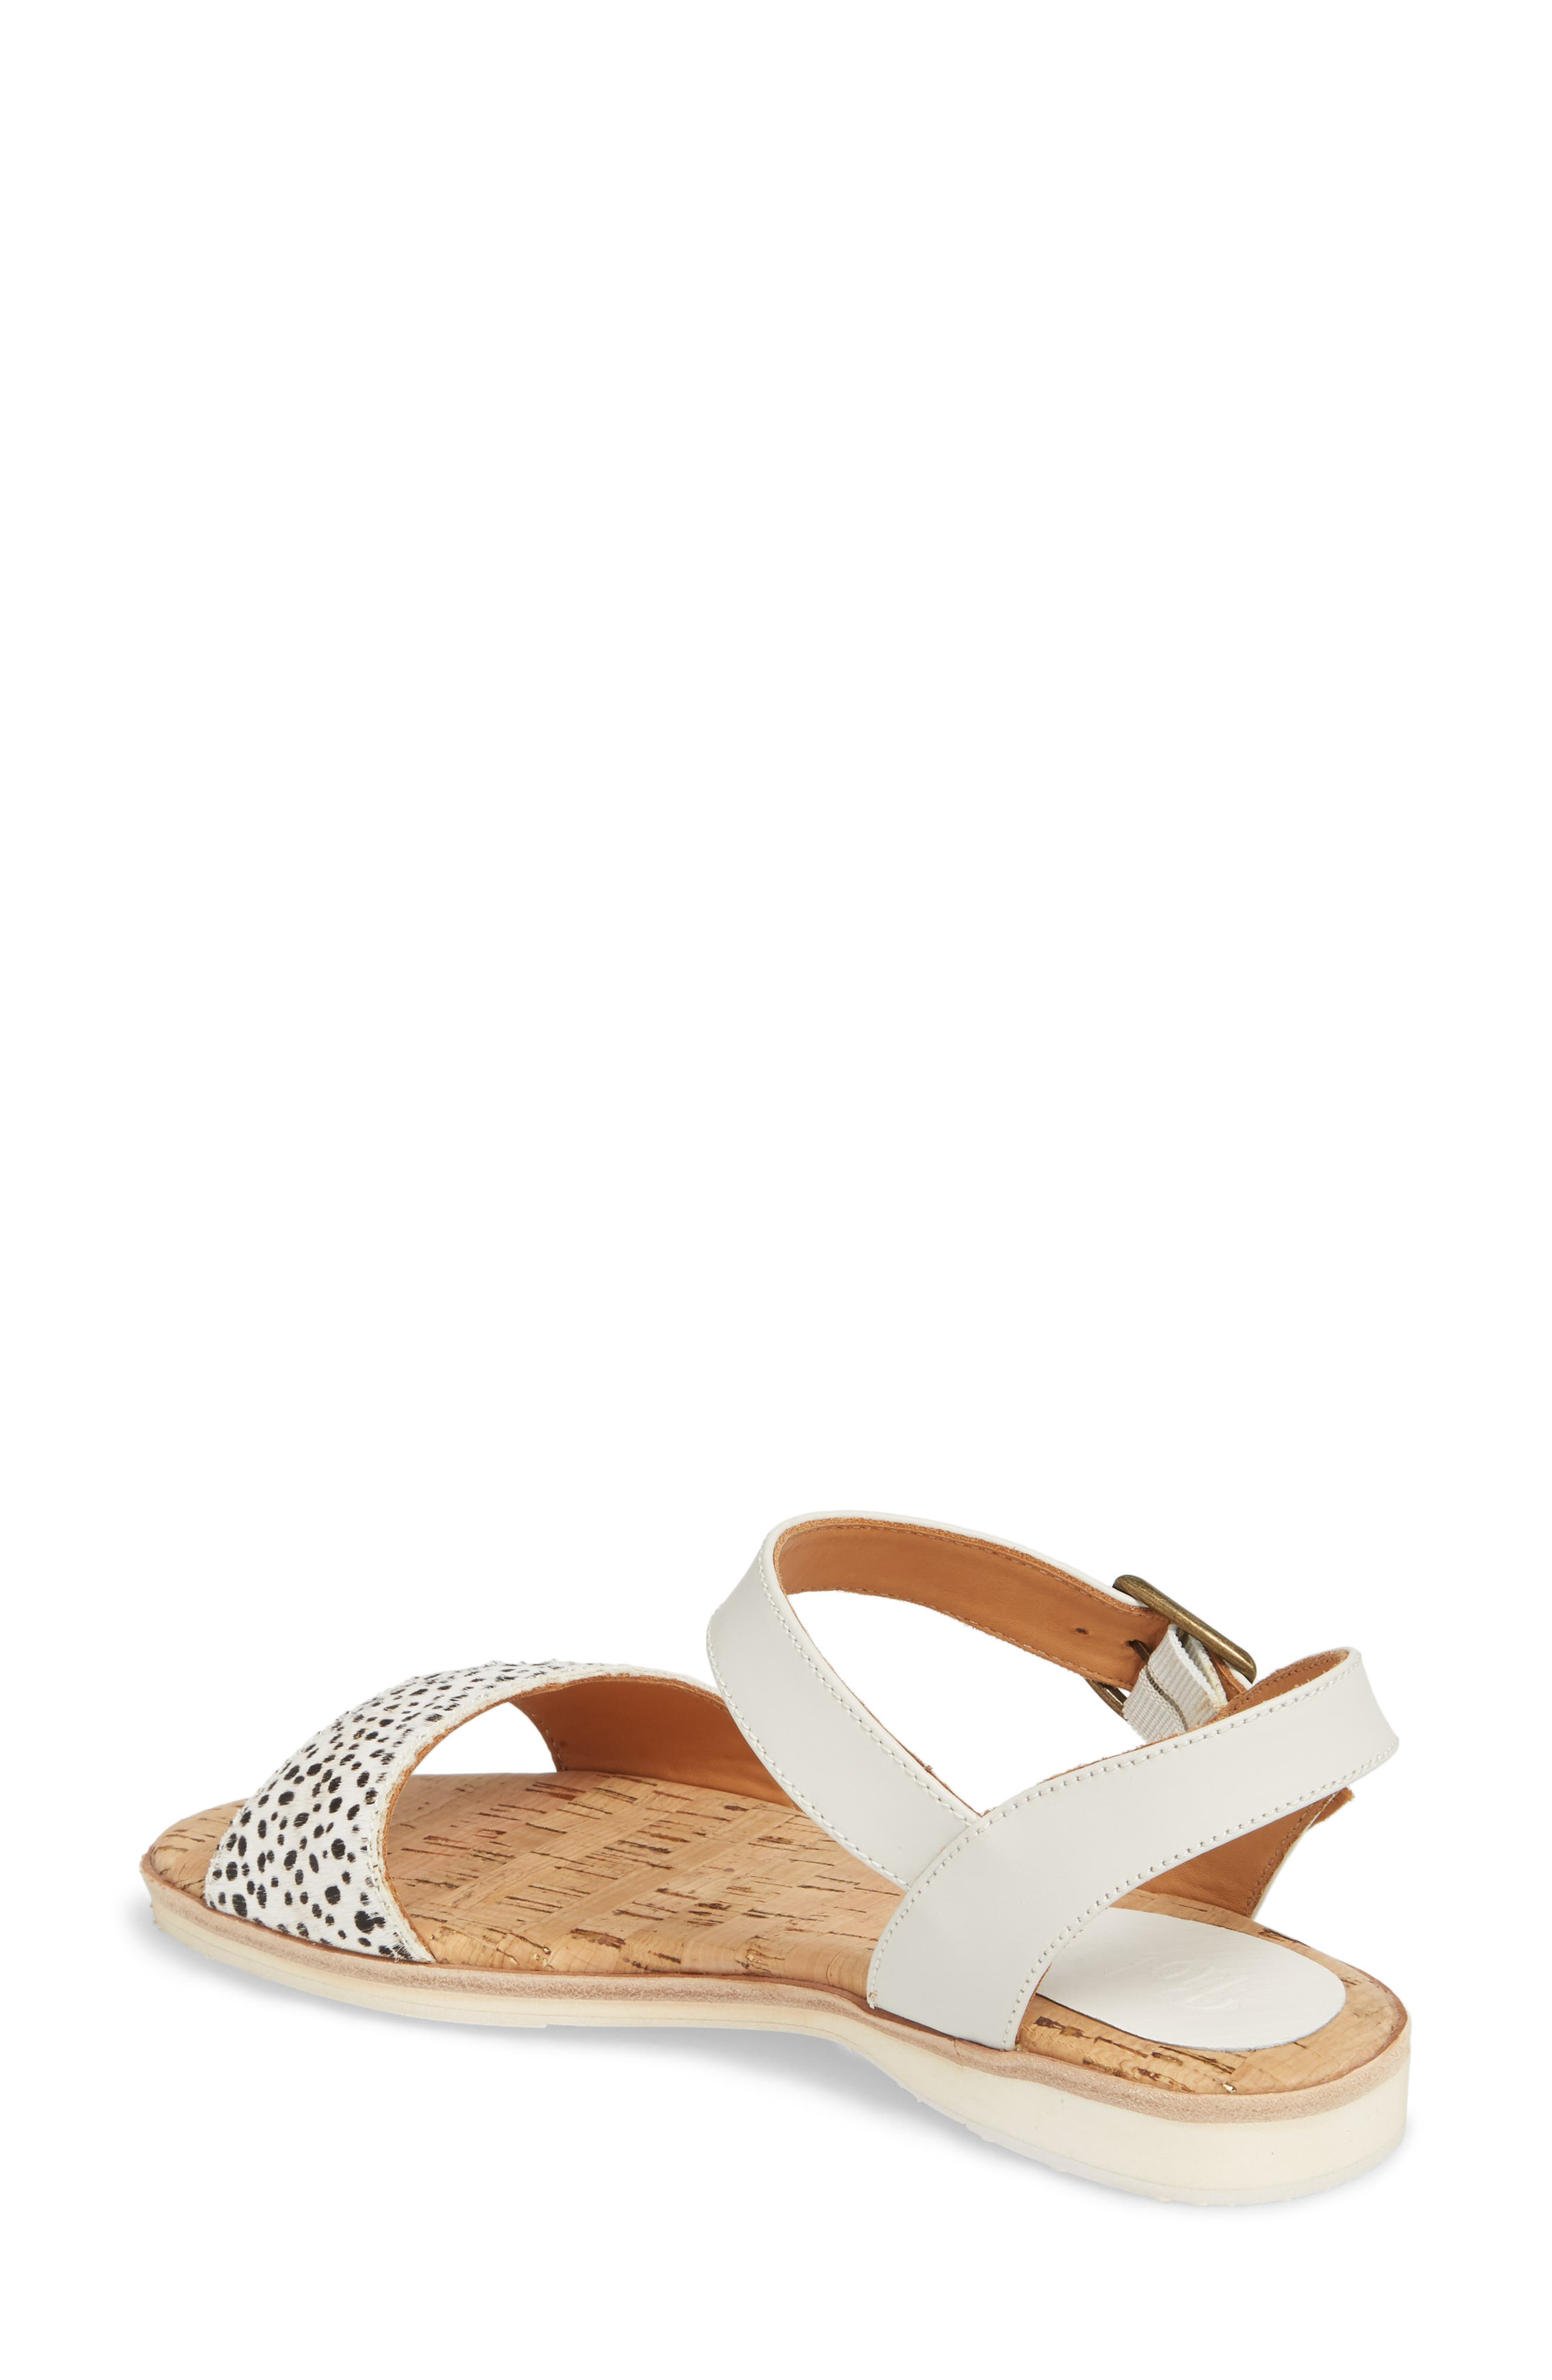 Genuine Calf Hair Sandal,                             Alternate thumbnail 2, color,                             SNOW LEOPARD/ WHITE LEATHER